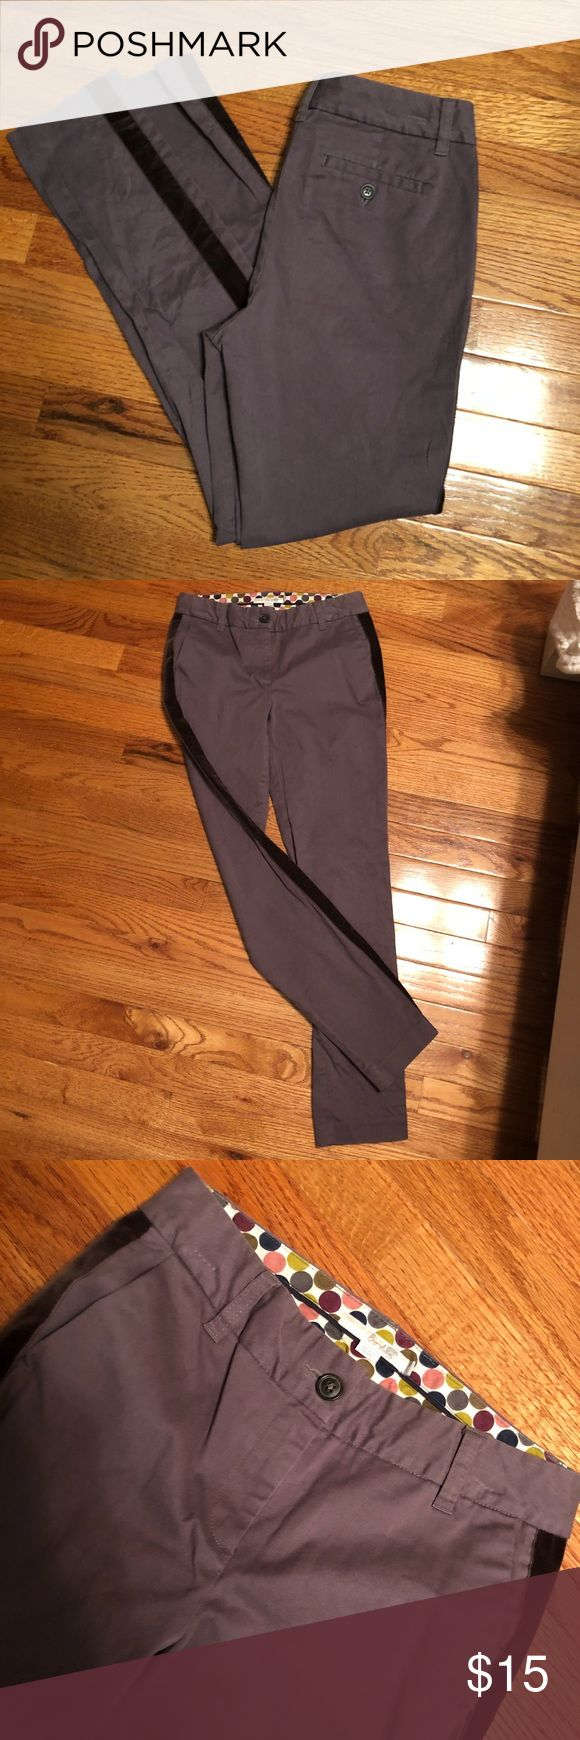 Boden Tuxedo Stripe Pants Taupe colored pants with a dark grayish/brown velvet tuxedo stripe. Excellent condition. Boden Pants Skinny